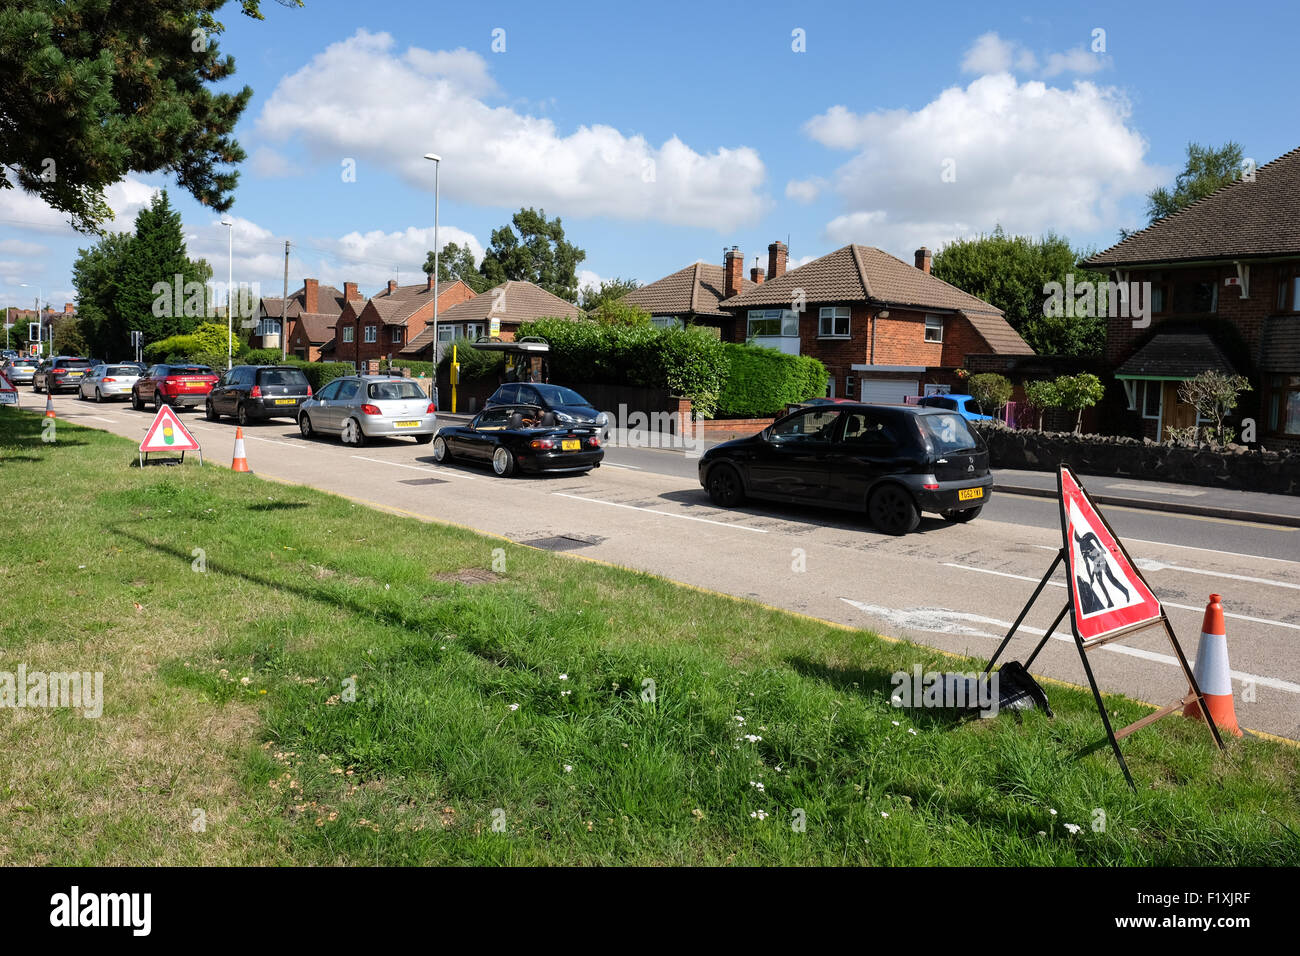 traffic congestion in roadworks loughborough - Stock Image